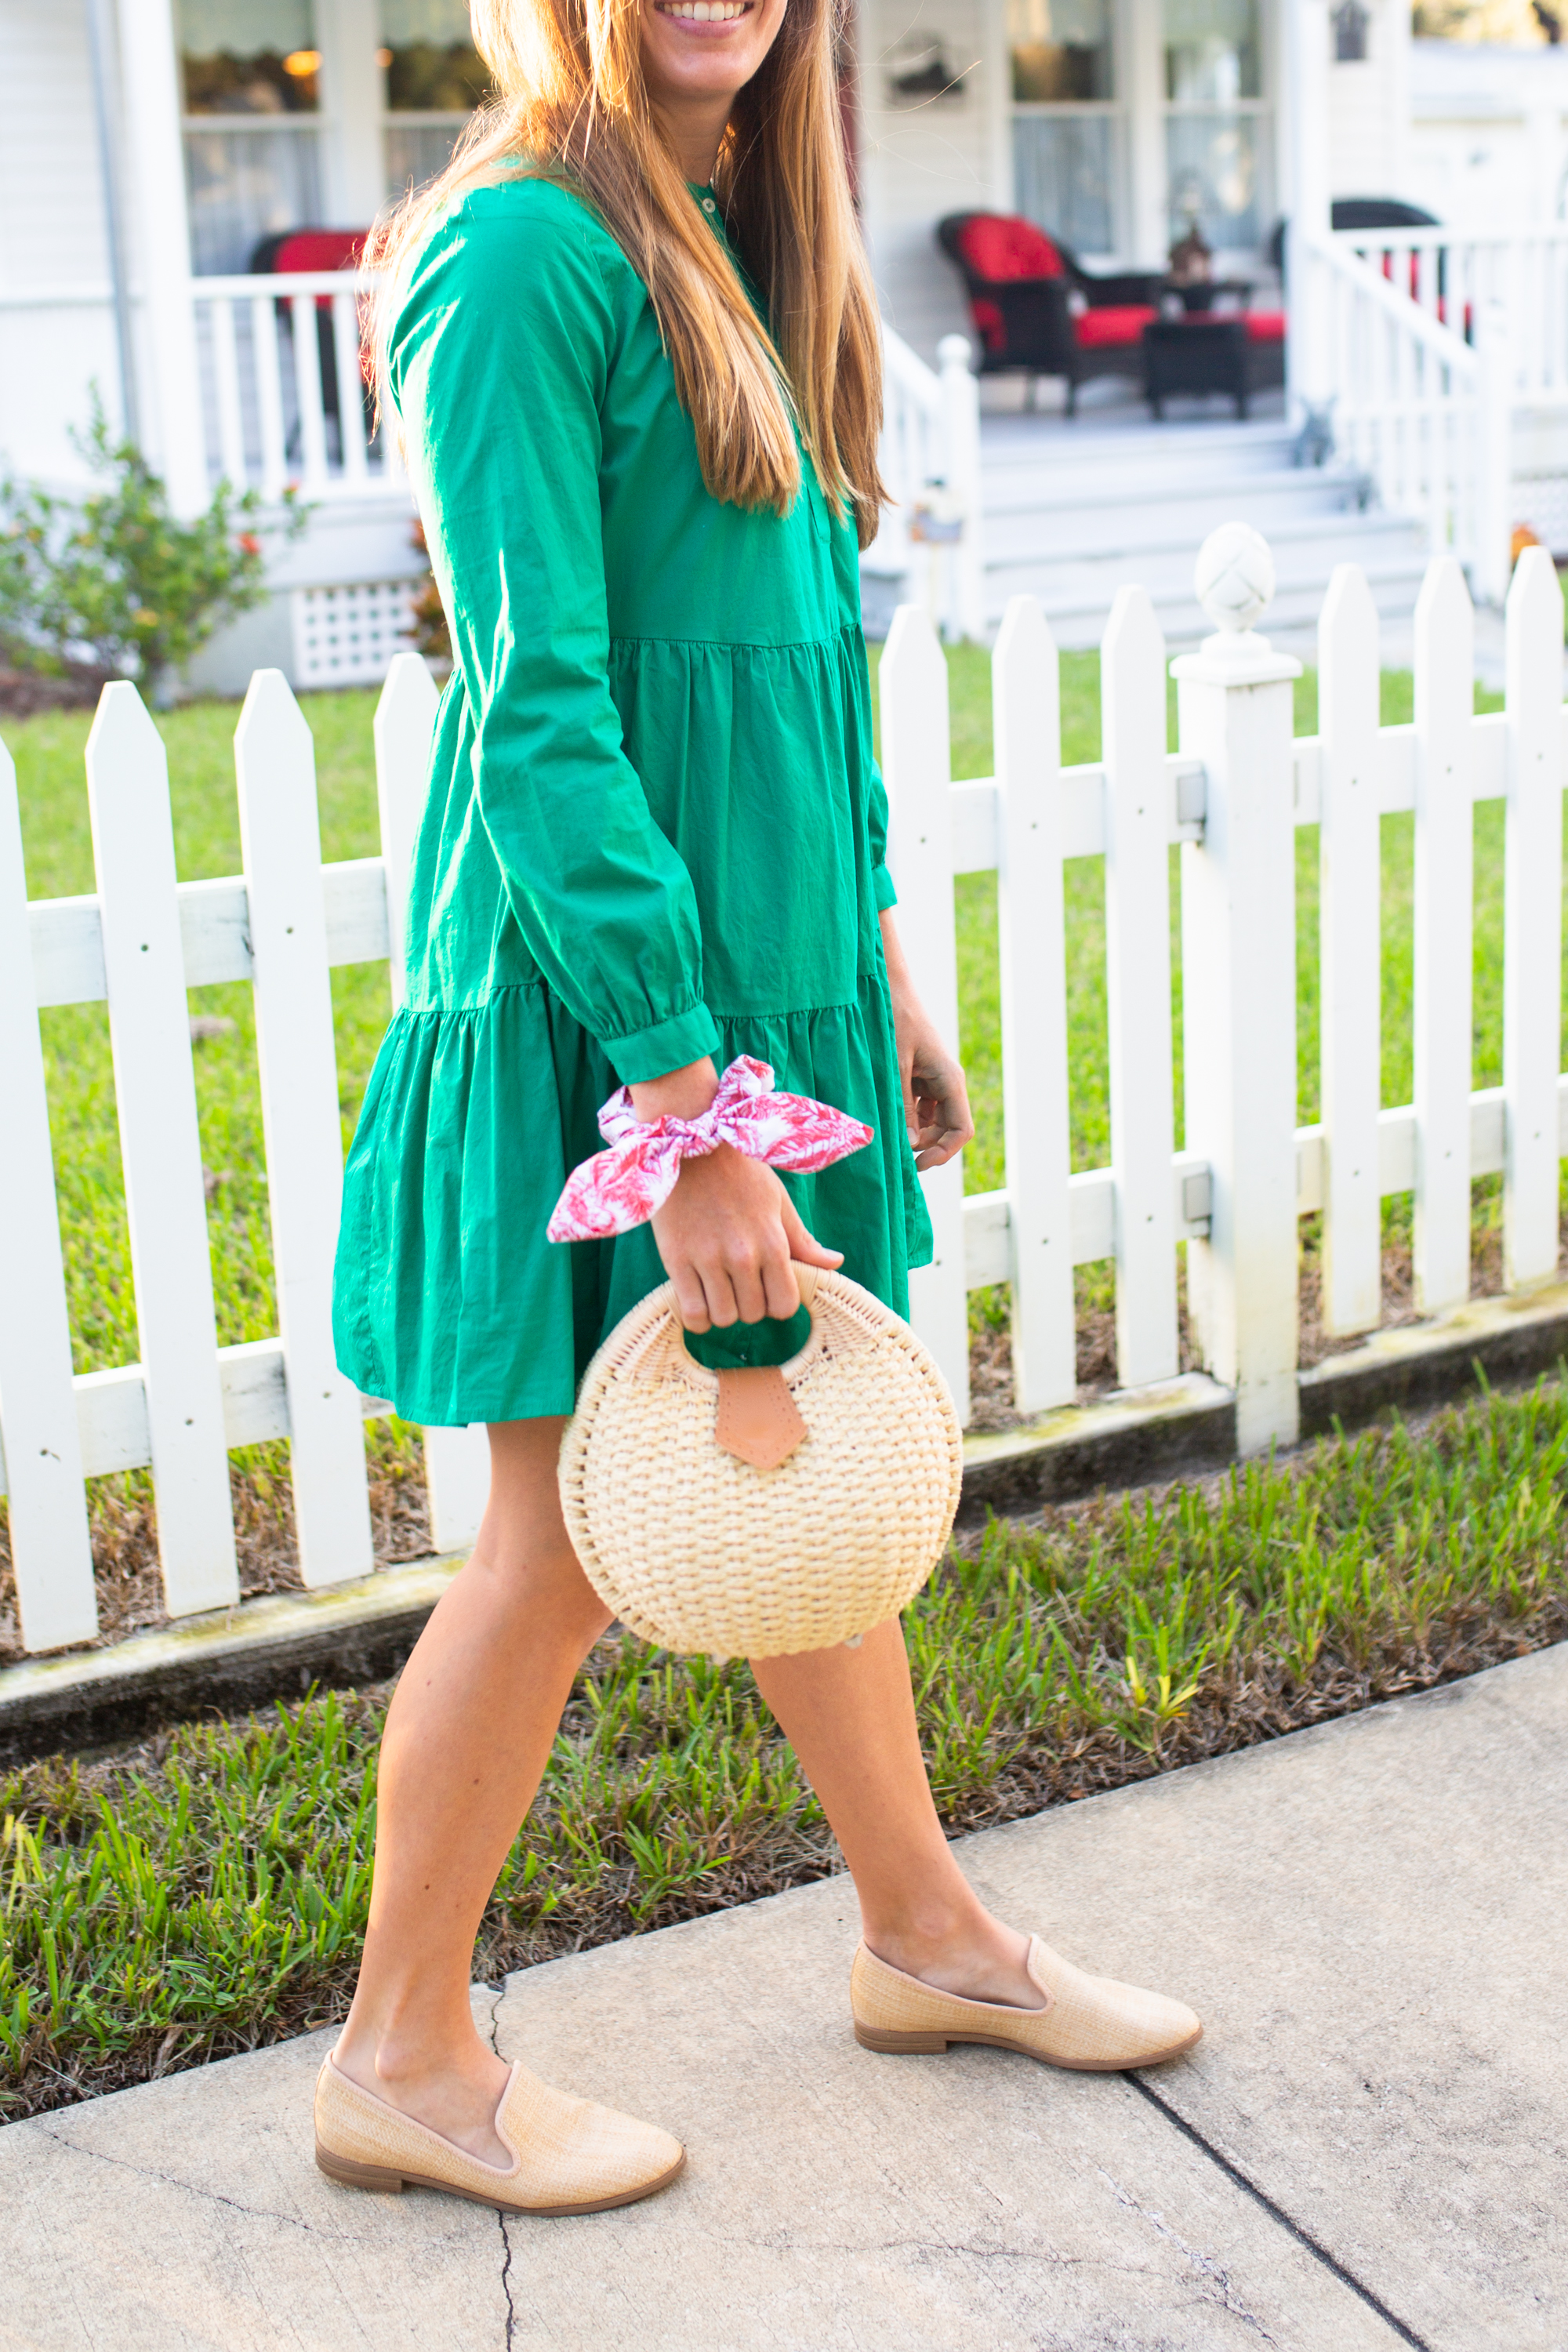 Long Sleeved Green Dresses for Winter / Winter Dress Ideas / Cold Weather Dresses / Cute Winter Dresses / Mini Dress / Winter in Florida / Straw Bag - Sunshine Style, A Florida Based Fashion and Lifestyle Blog